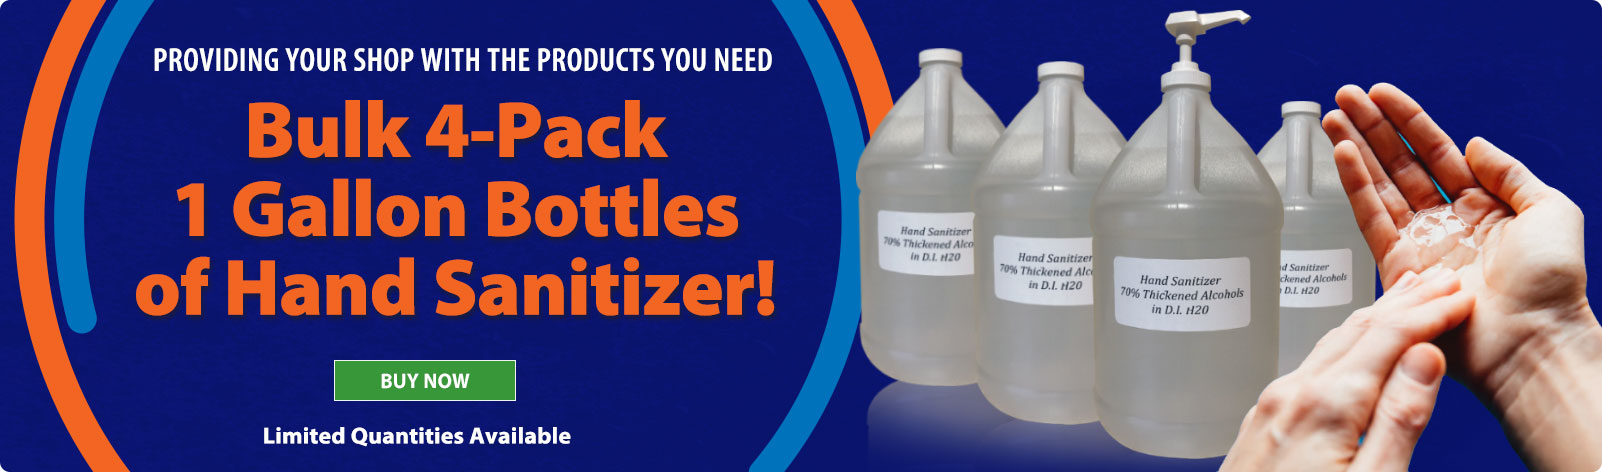 Bulk Hand Sanitizer - Limited quanities available!